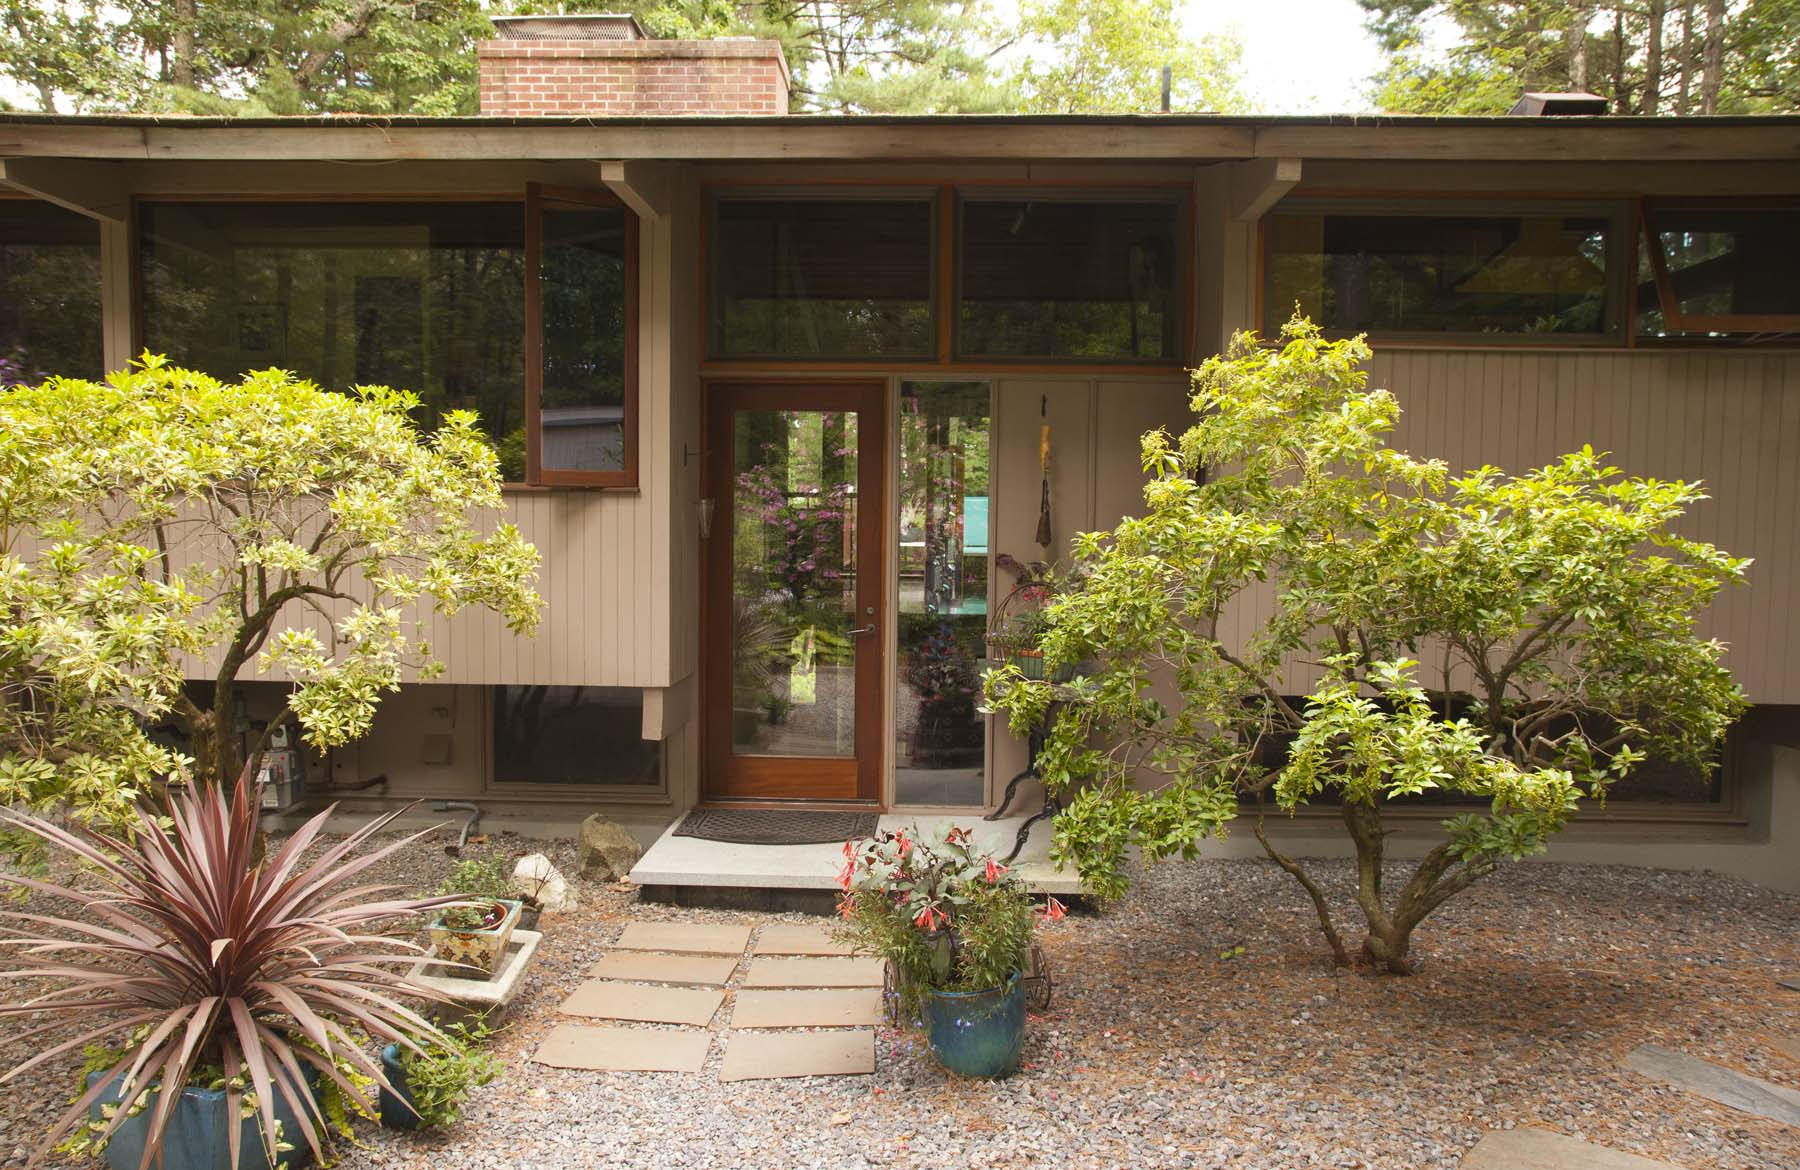 Single Family Home for Sale at Classic mid-century modern Deck home sited atop of a hill 101 Loker St Wayland, Massachusetts 01778 United States